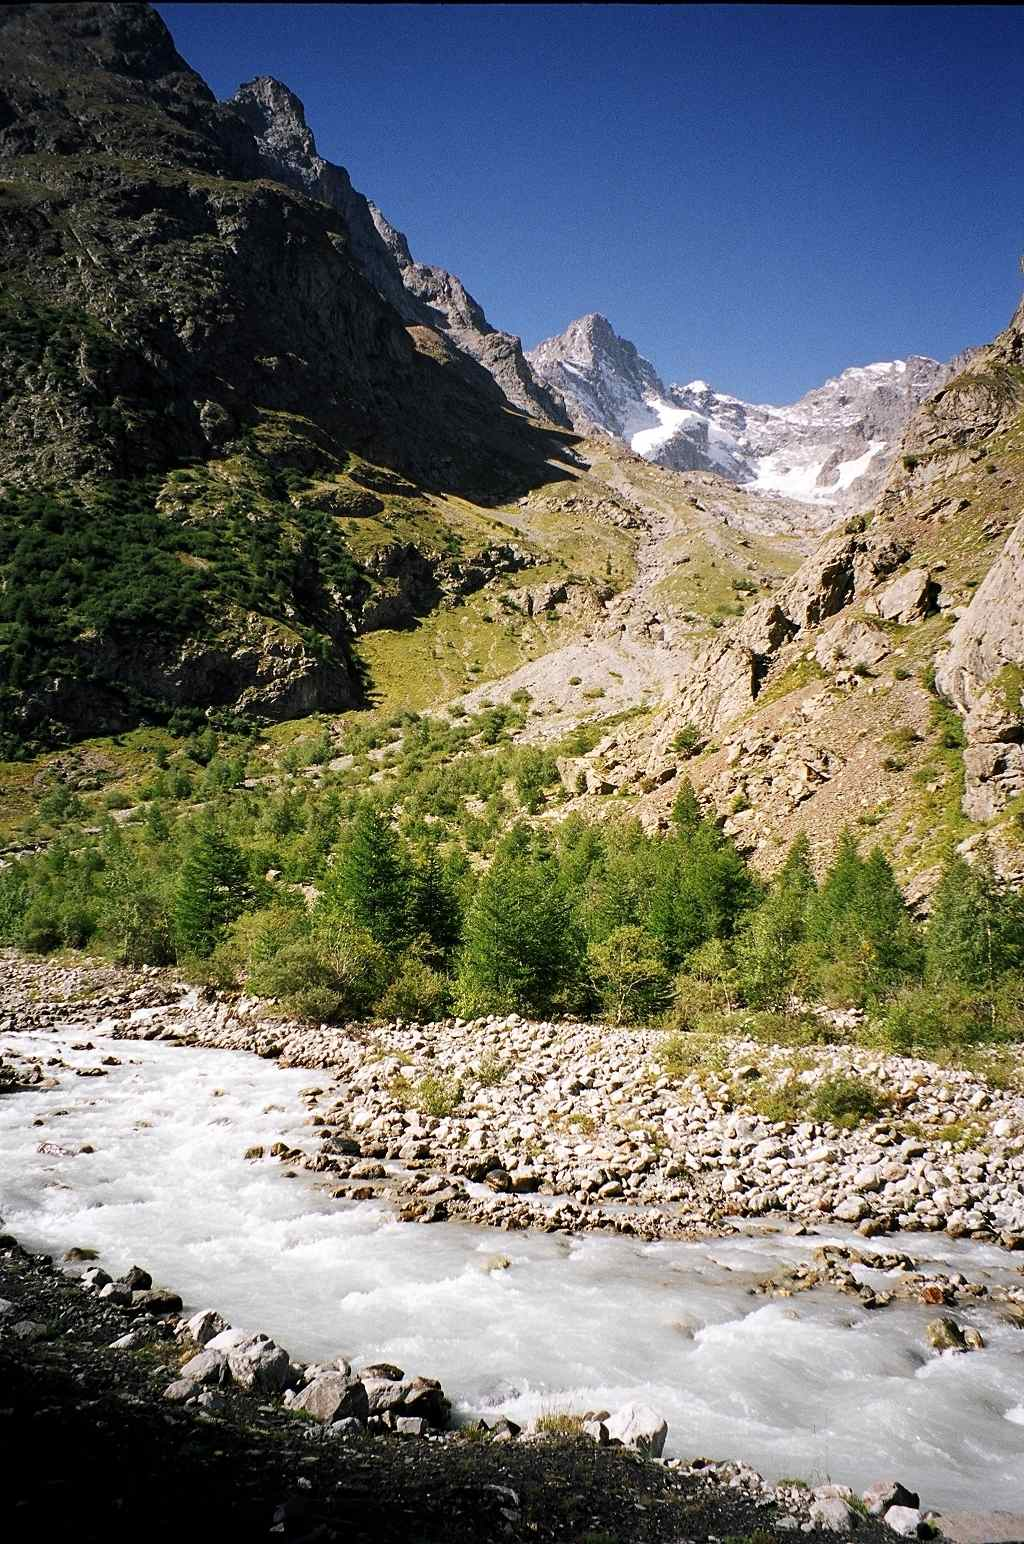 Stumpy S Blog Tour Of The Oisans Gr54 In The Ecrins